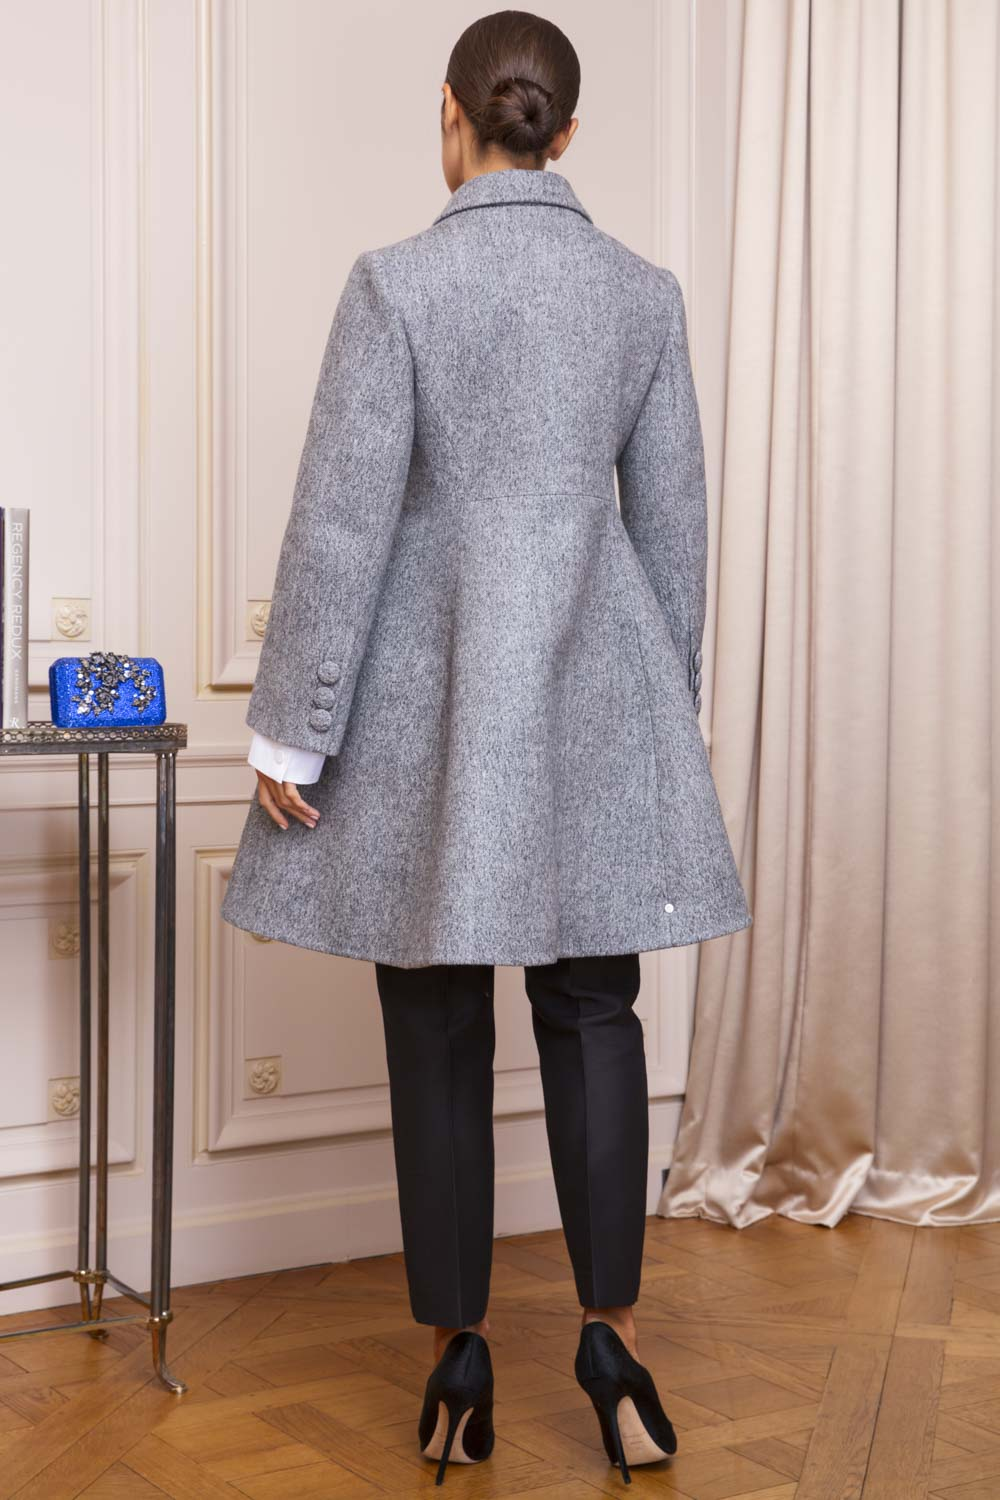 Sculptural dove grey bell-skirted coat